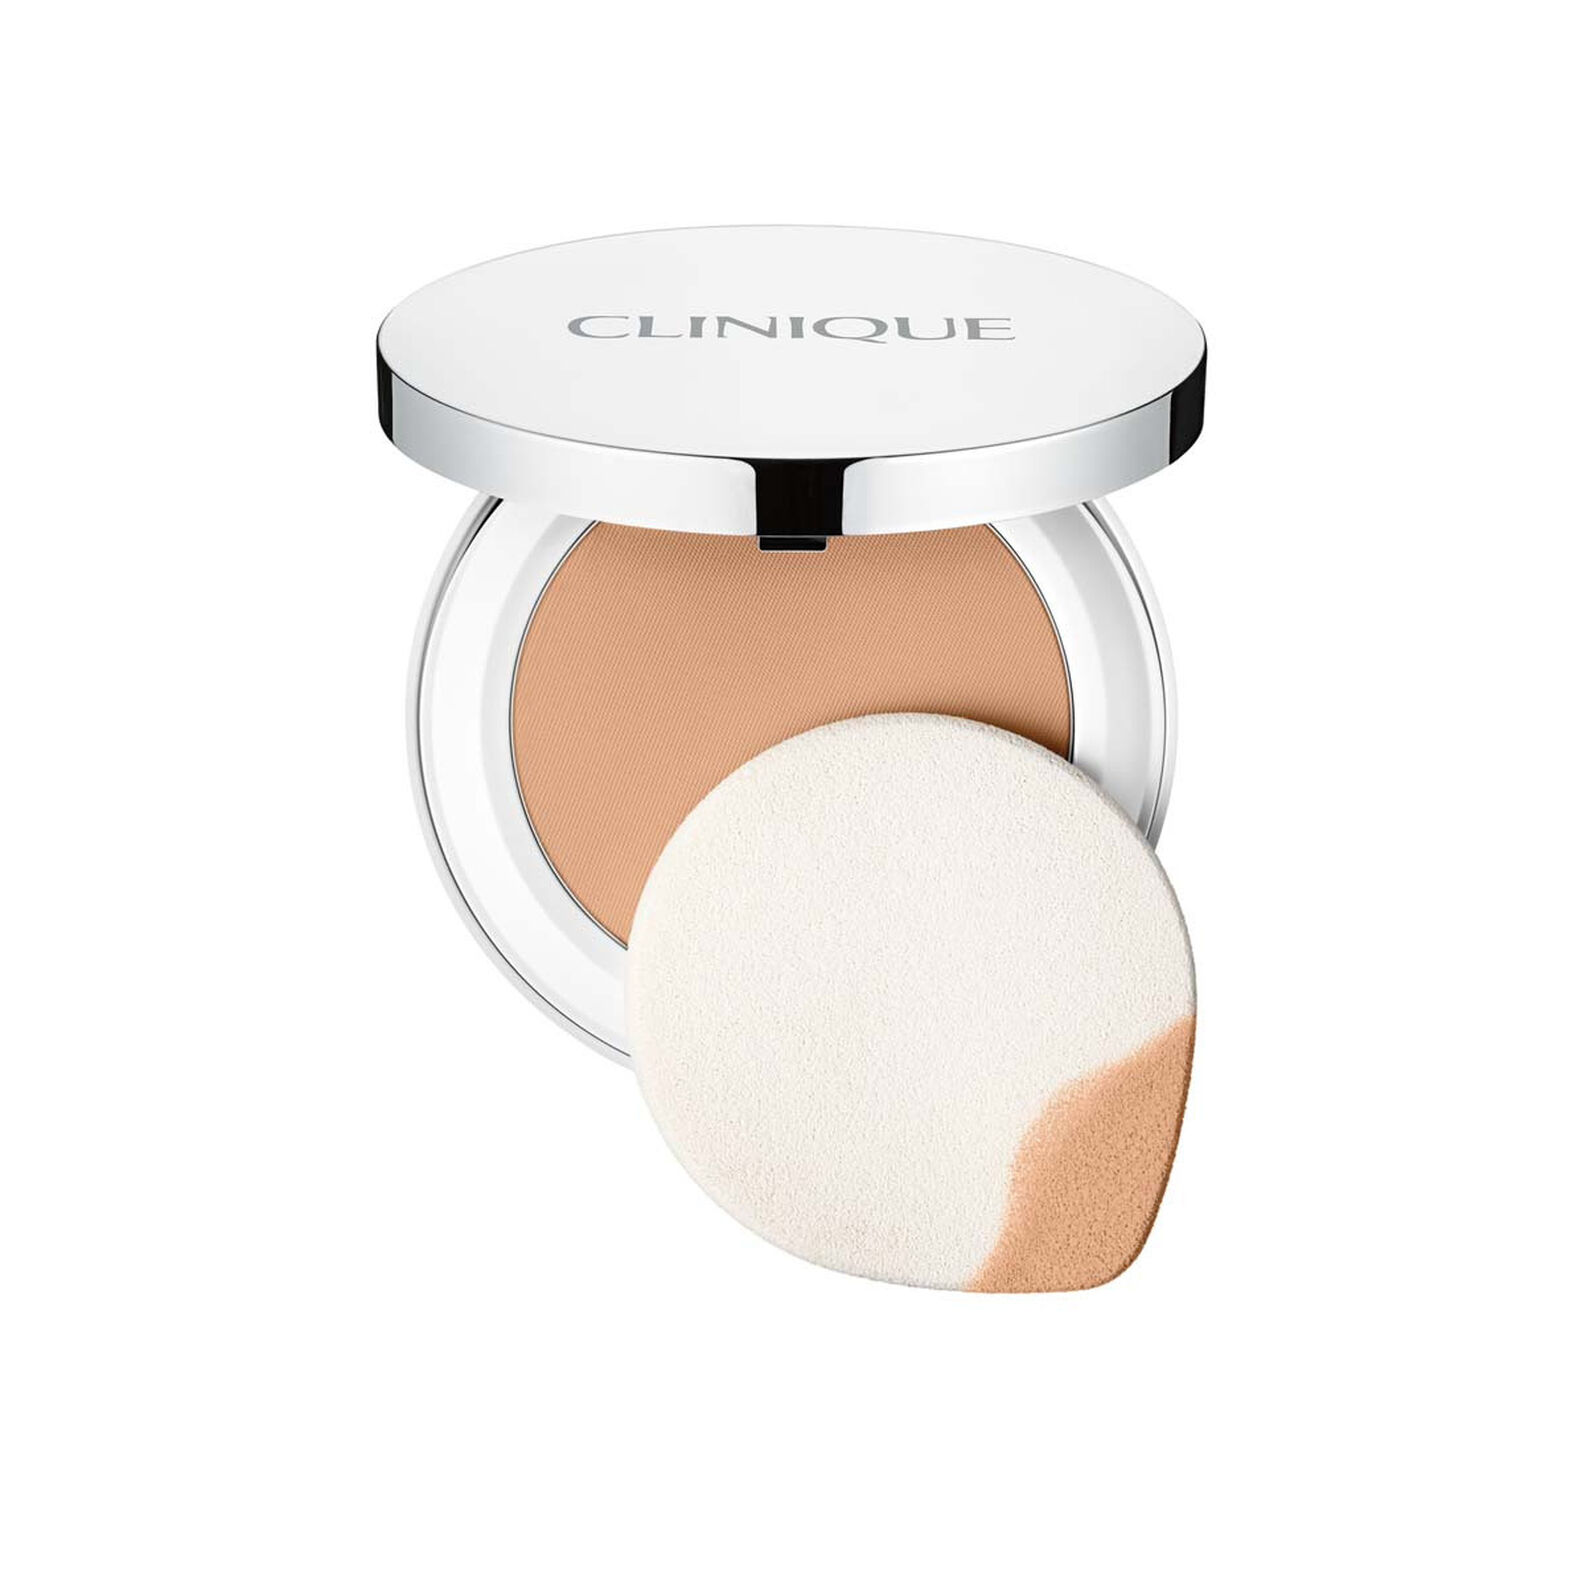 CLINIQUE BEYOND PERFECTING POWDER FOUNDATION - 09 NEUTRAL 14,5 G